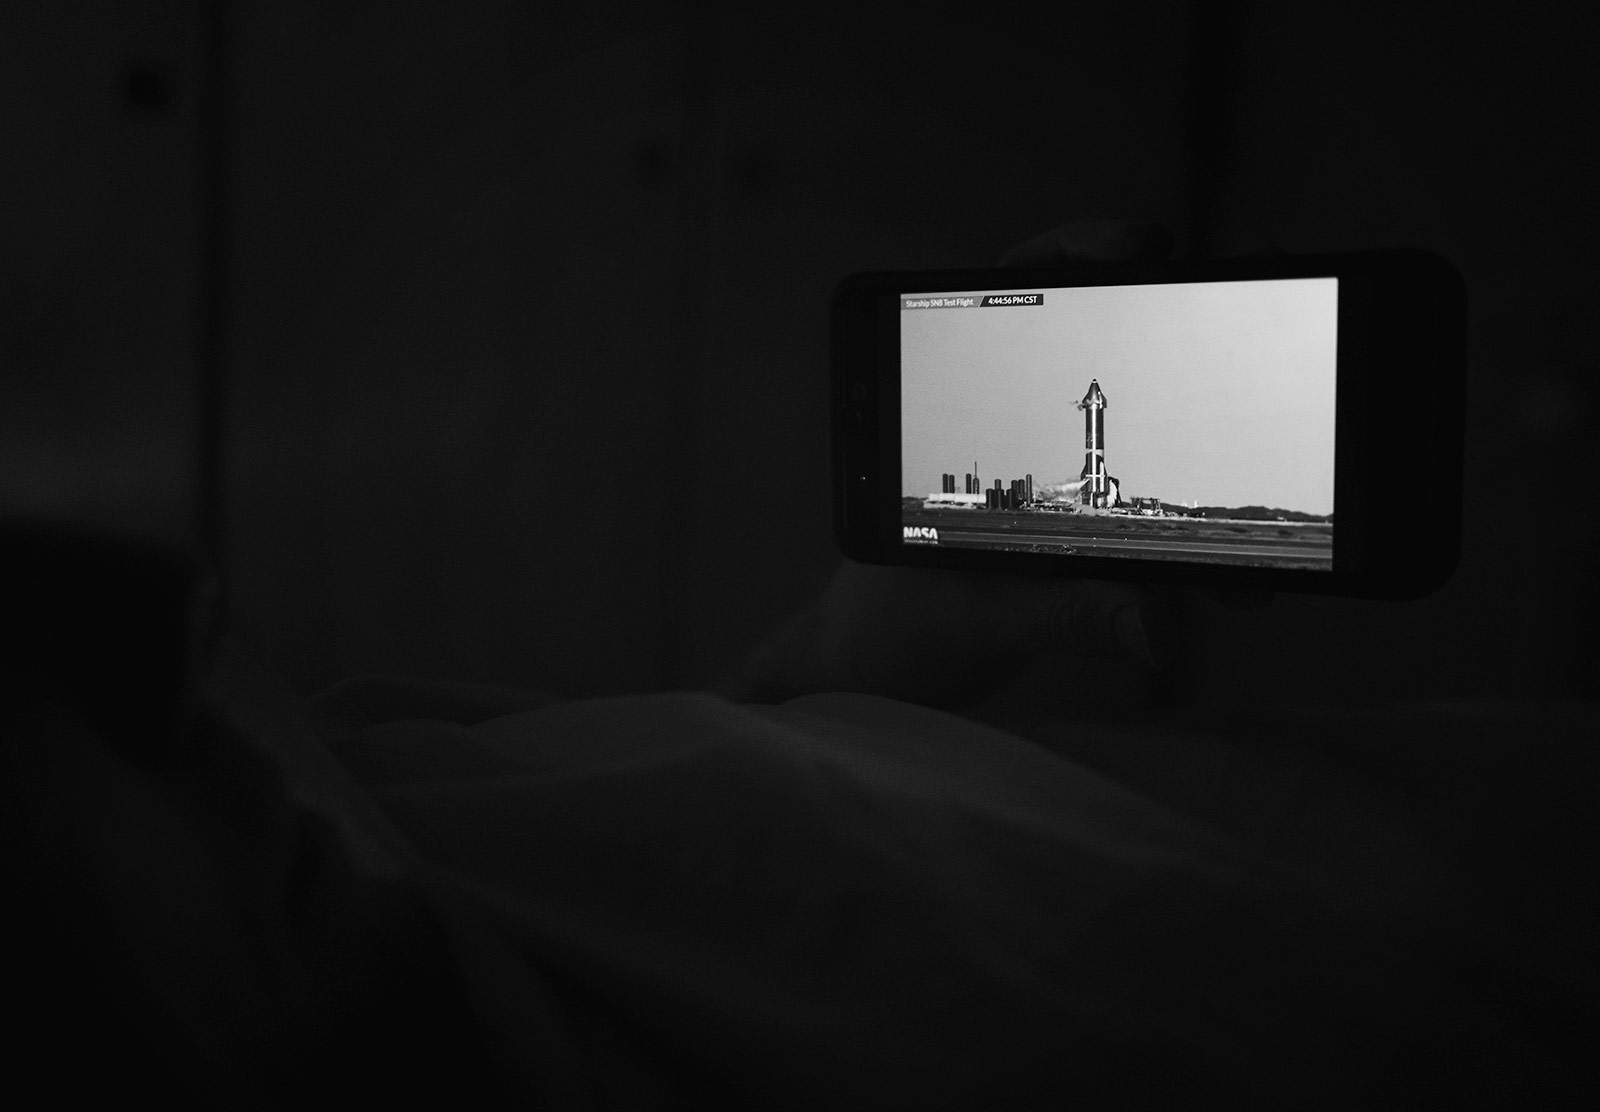 Rocket launch video on phone